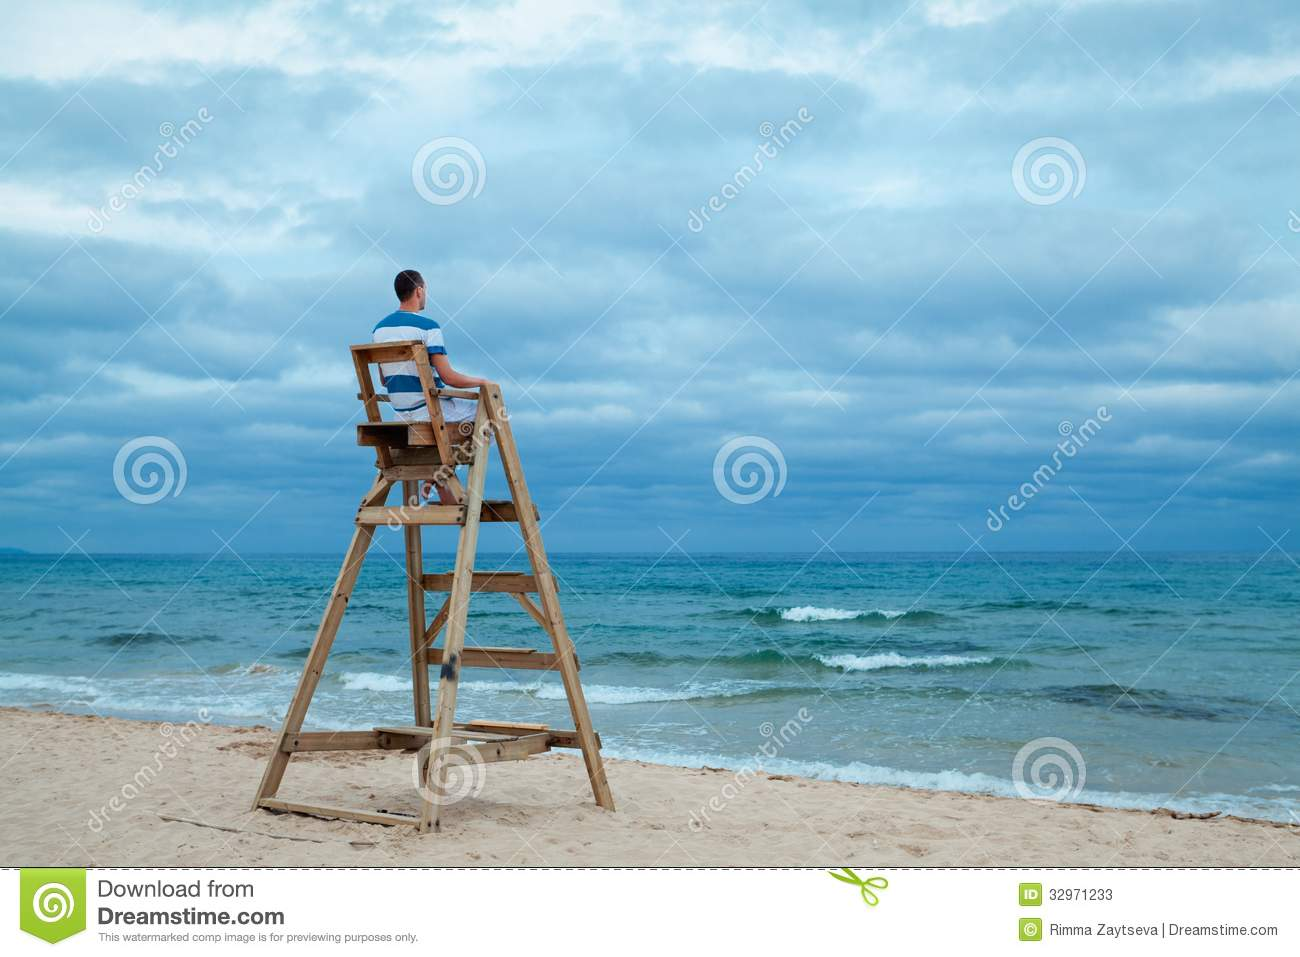 Man sitting on lifeguard chair